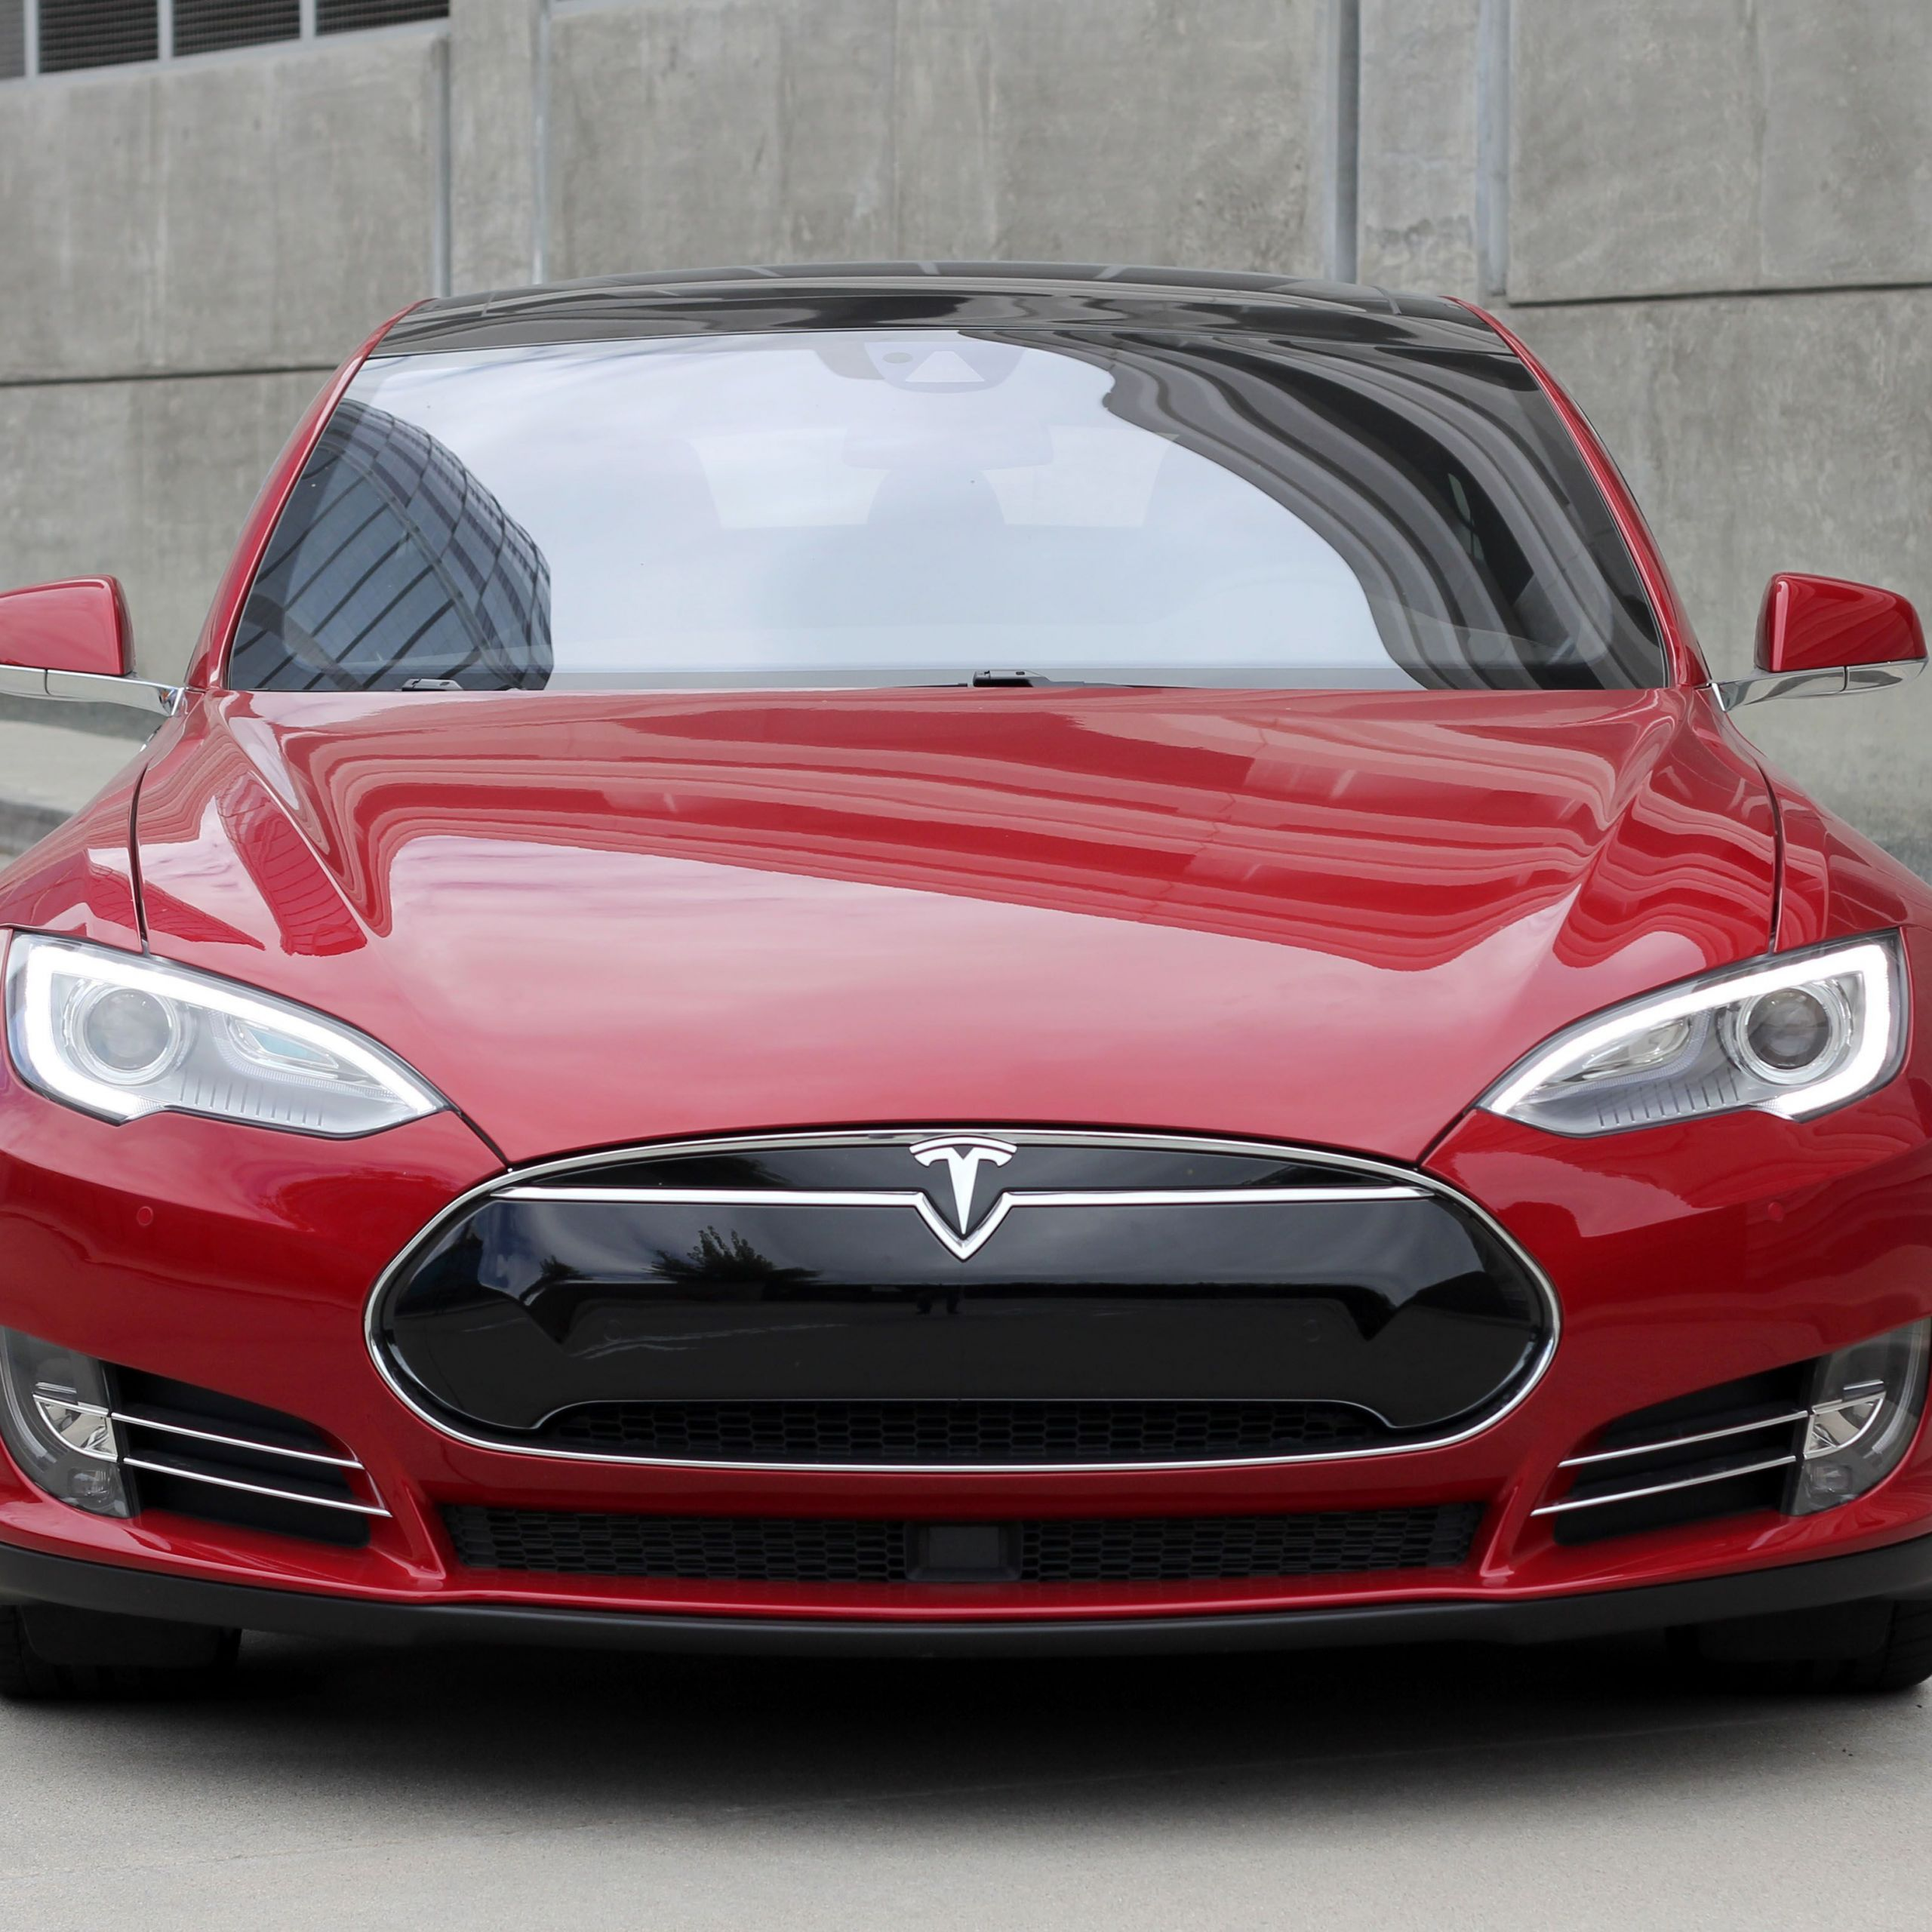 Tesla Roadster 2 Best Of Introducing the All New Tesla Model S P90d with Ludicrous